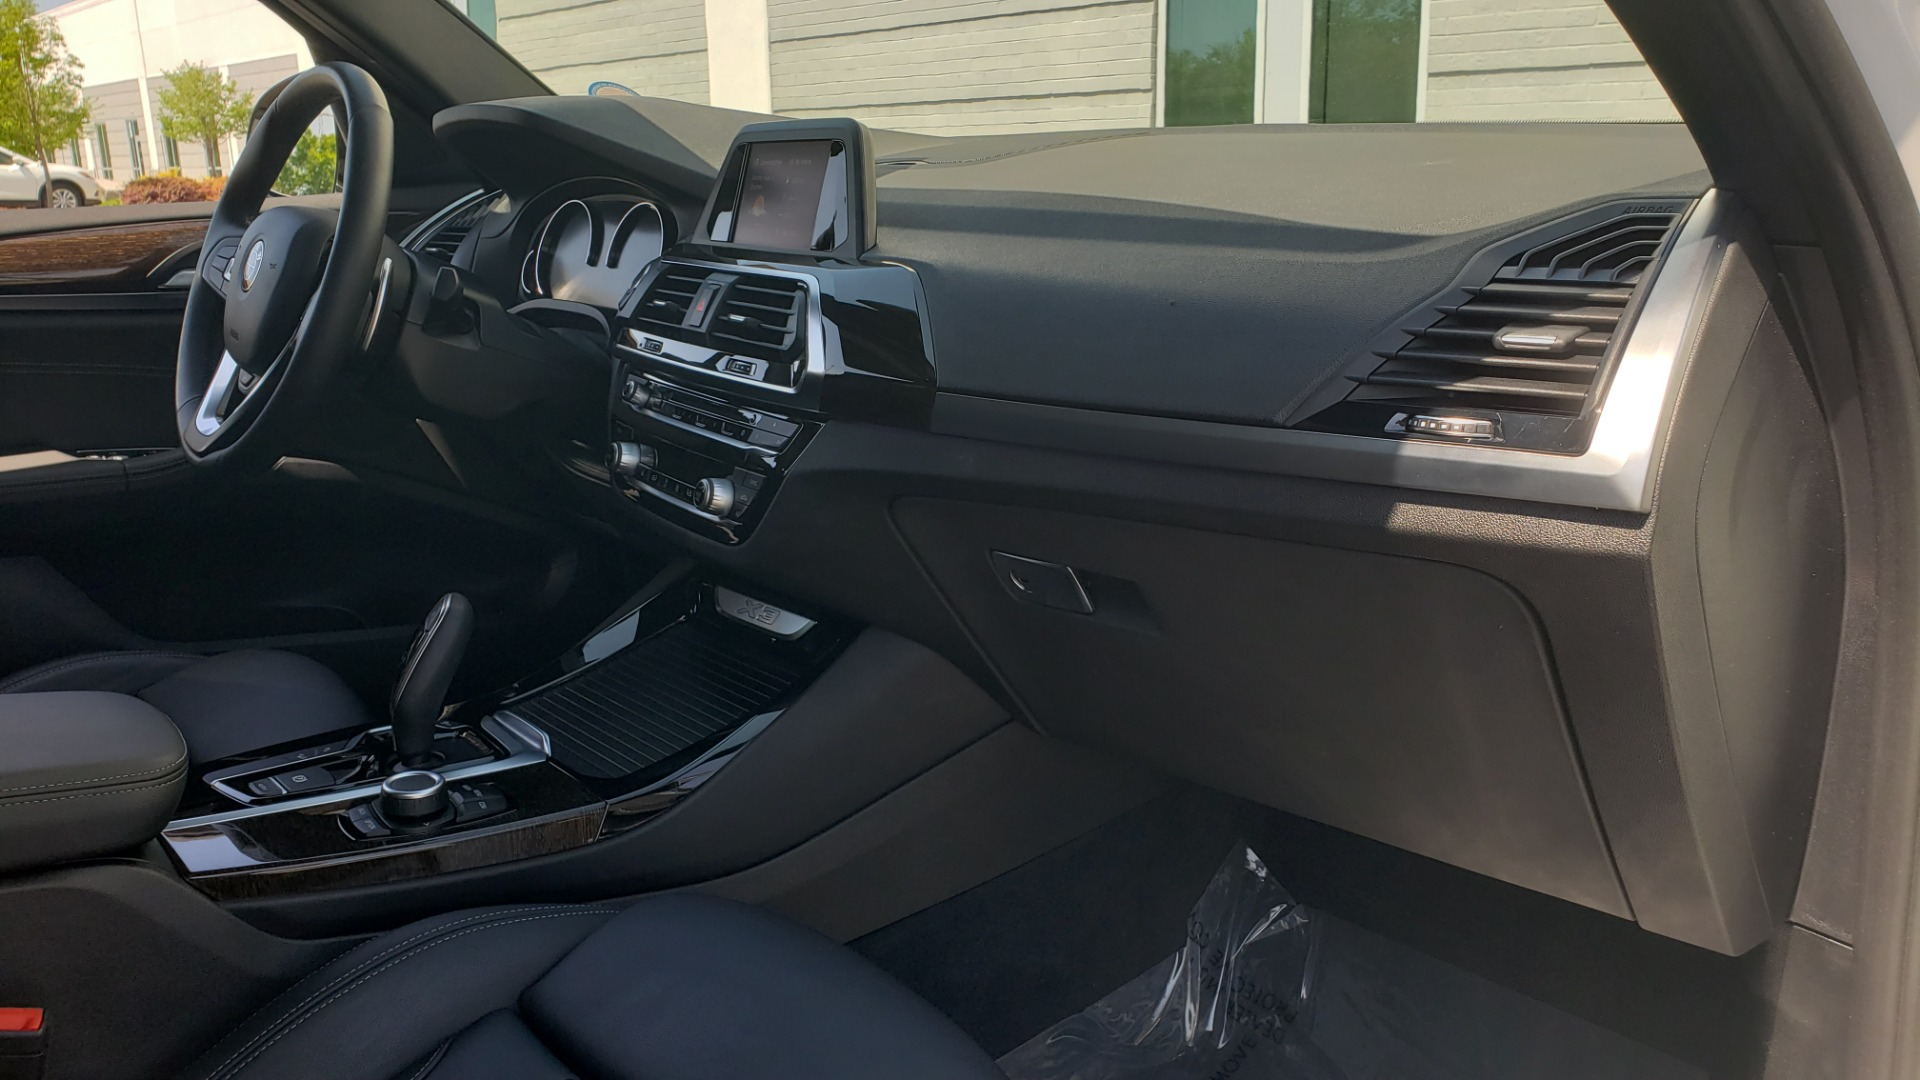 Used 2018 BMW X3 XDRIVE30I / CONV PKG / PANO-ROOF / HTD STS / REARVIEW for sale $33,995 at Formula Imports in Charlotte NC 28227 69